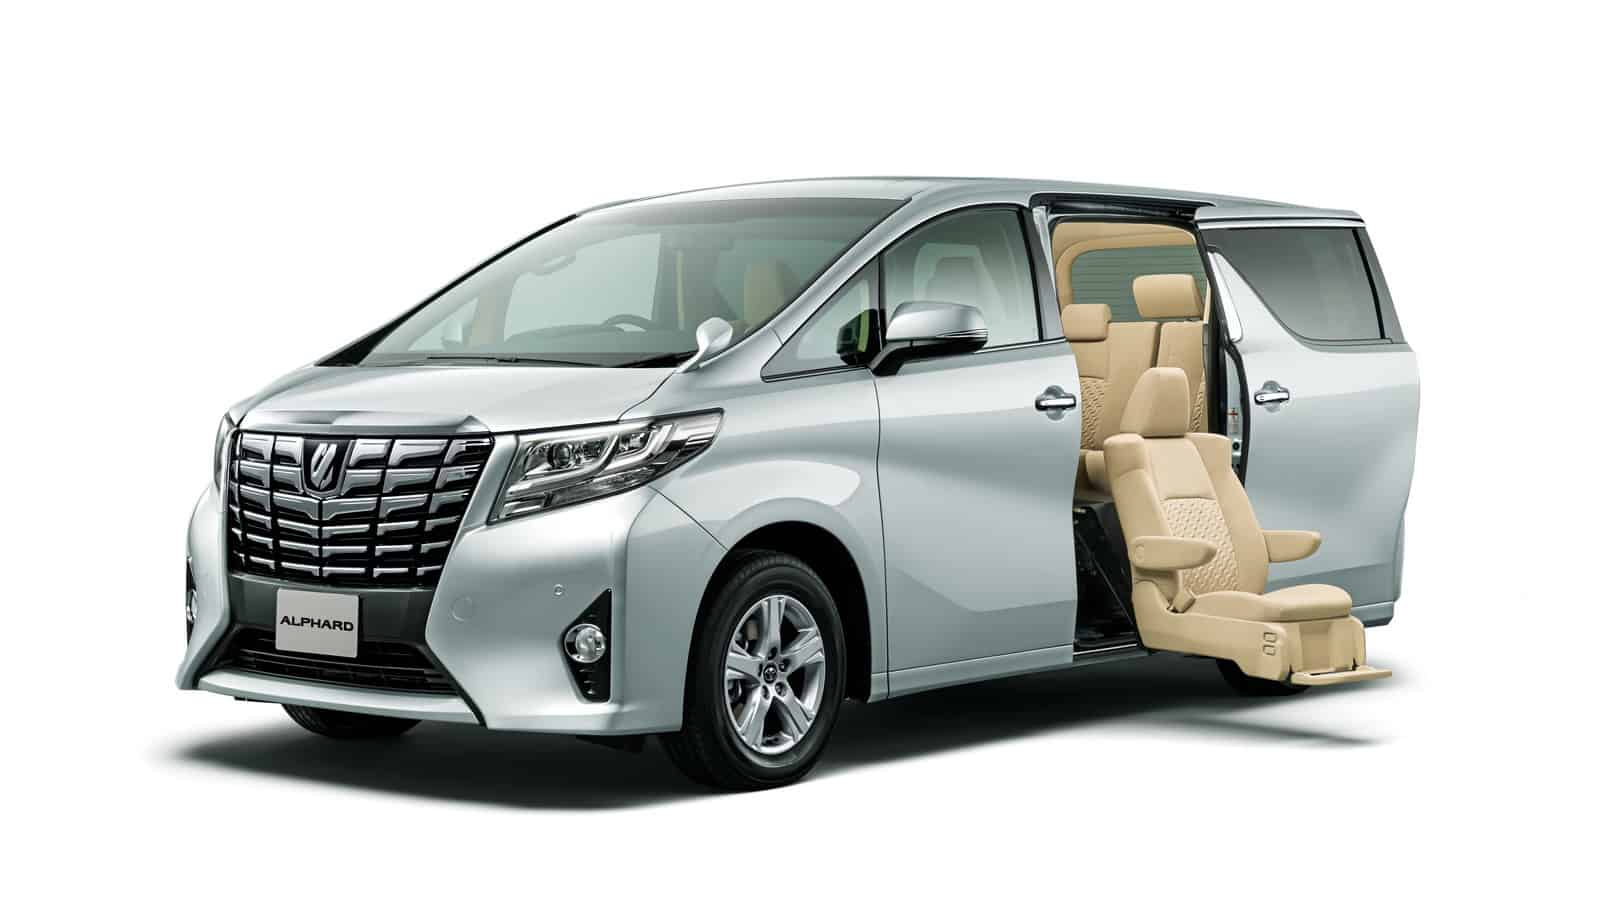 Toyota Alphard And Vellfire Minivan America Is Not Ready